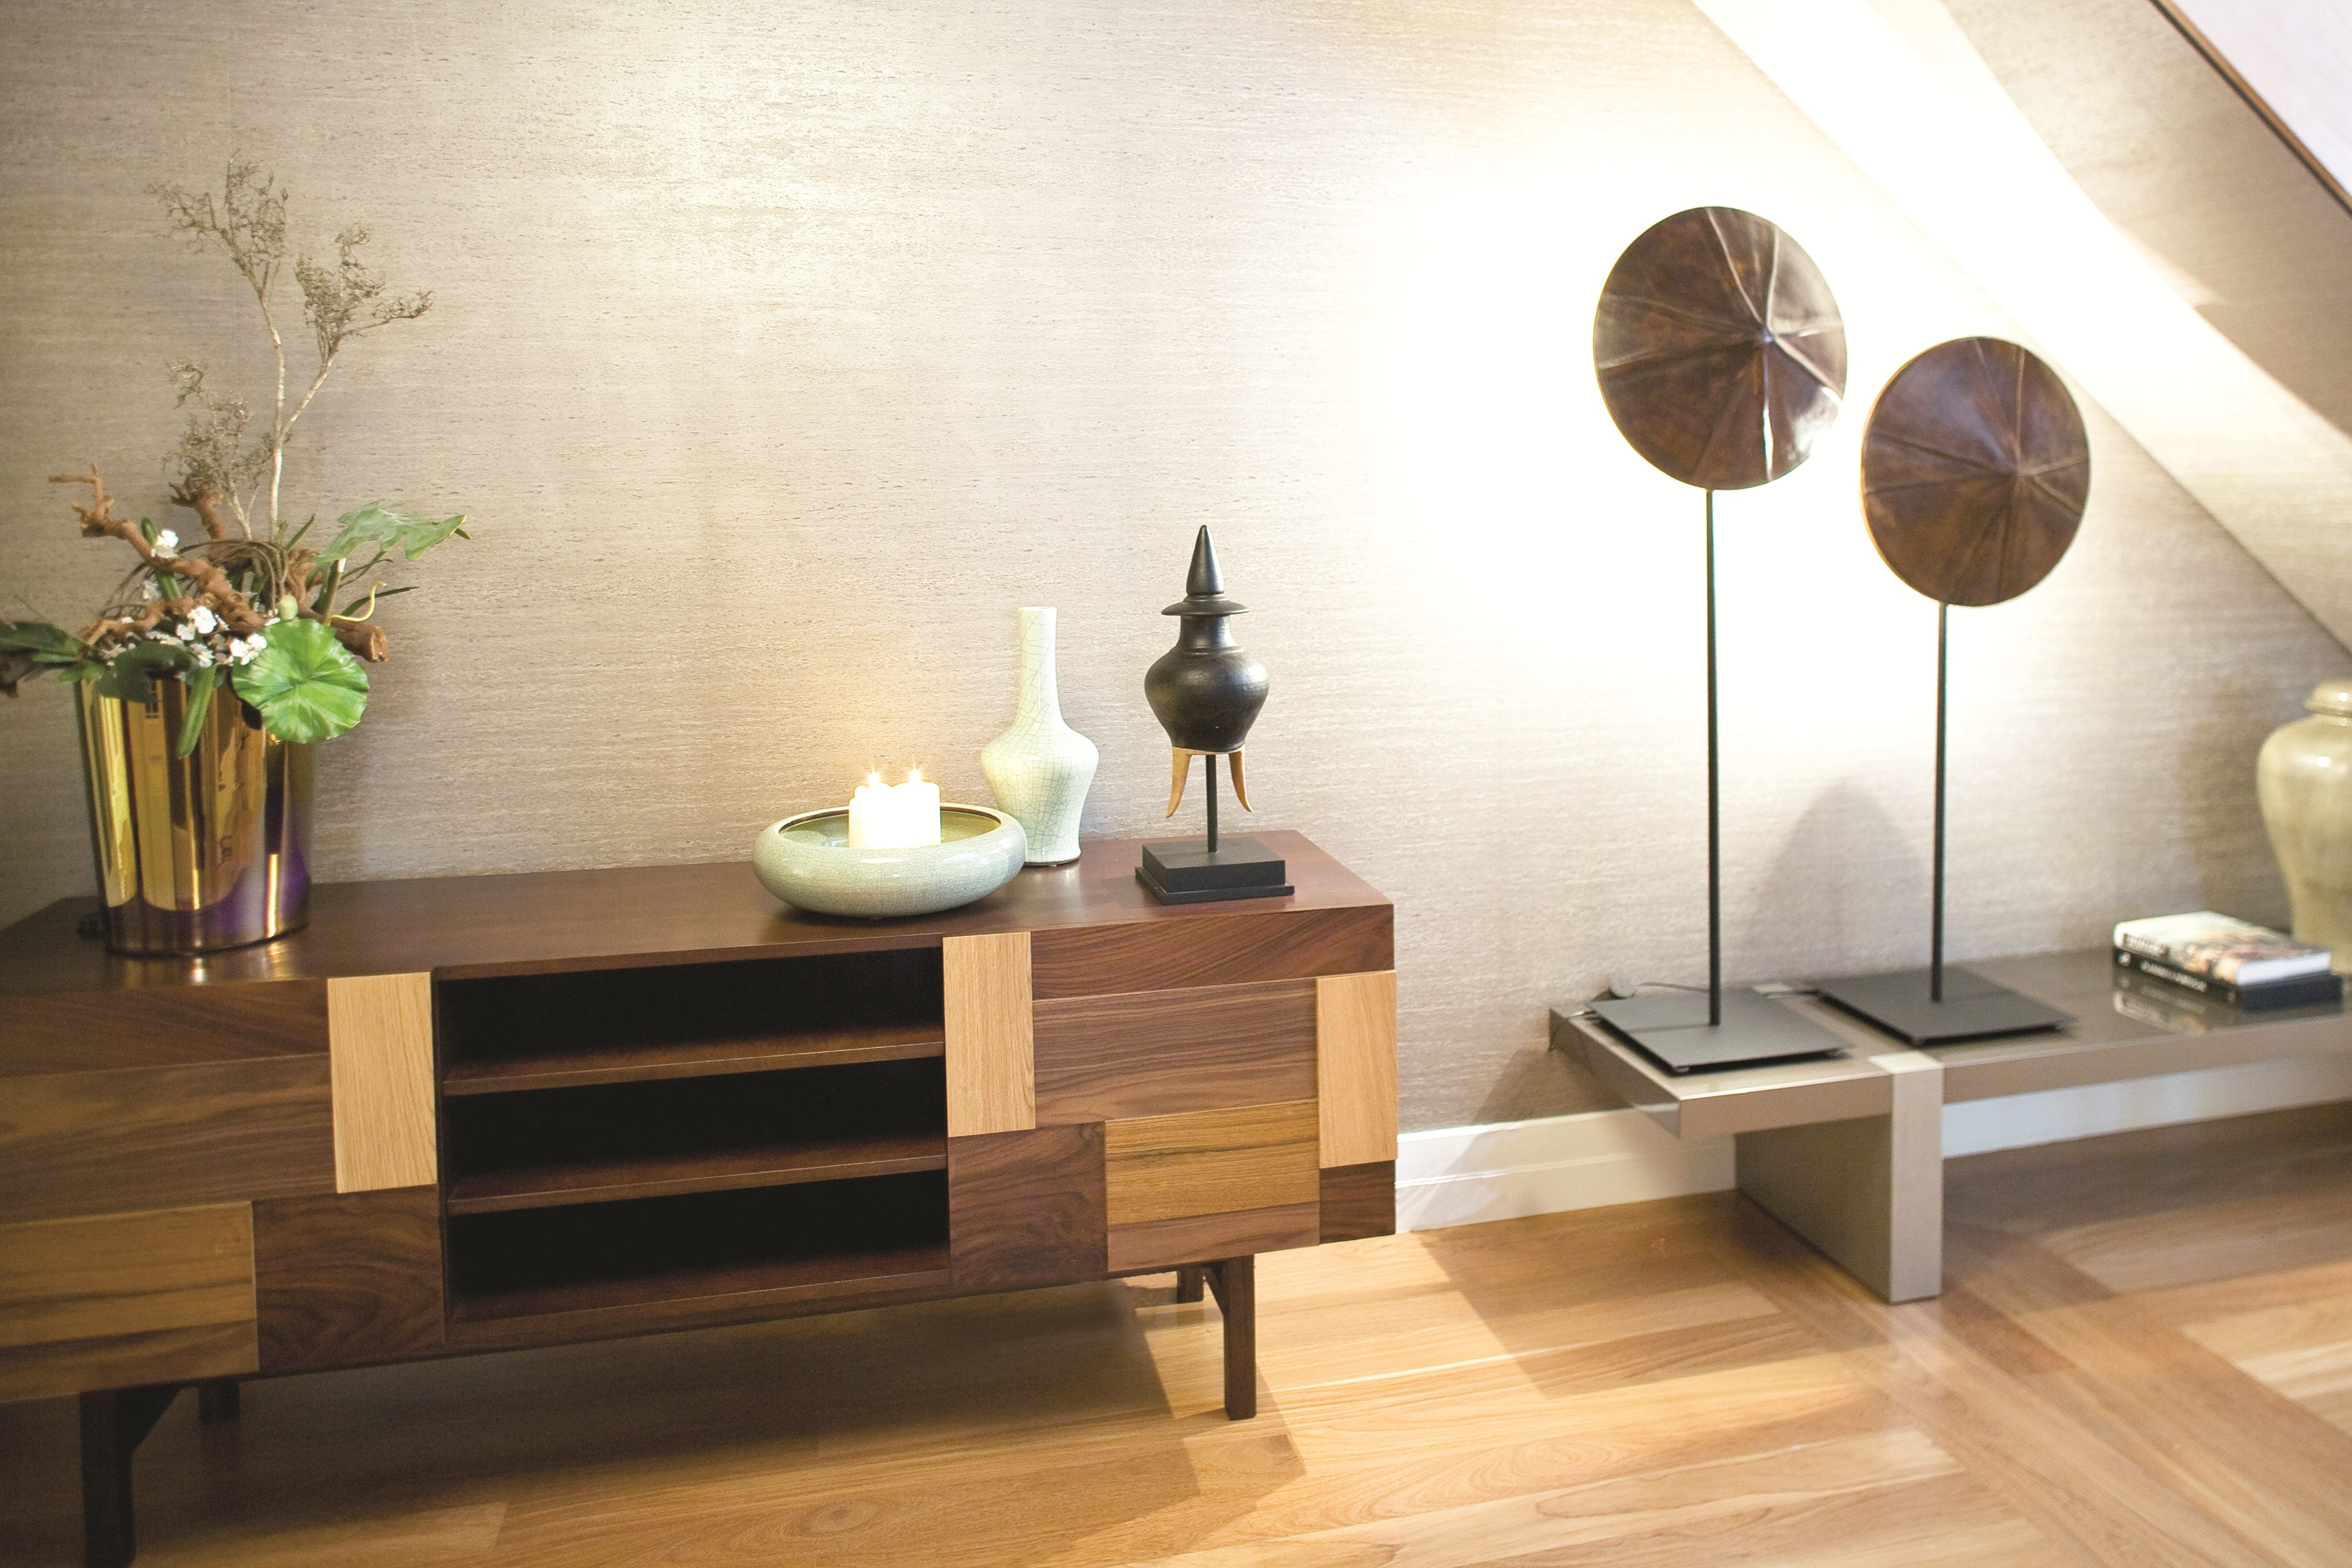 form sideboard by mambo unlimited ideas design claudia melo. Black Bedroom Furniture Sets. Home Design Ideas